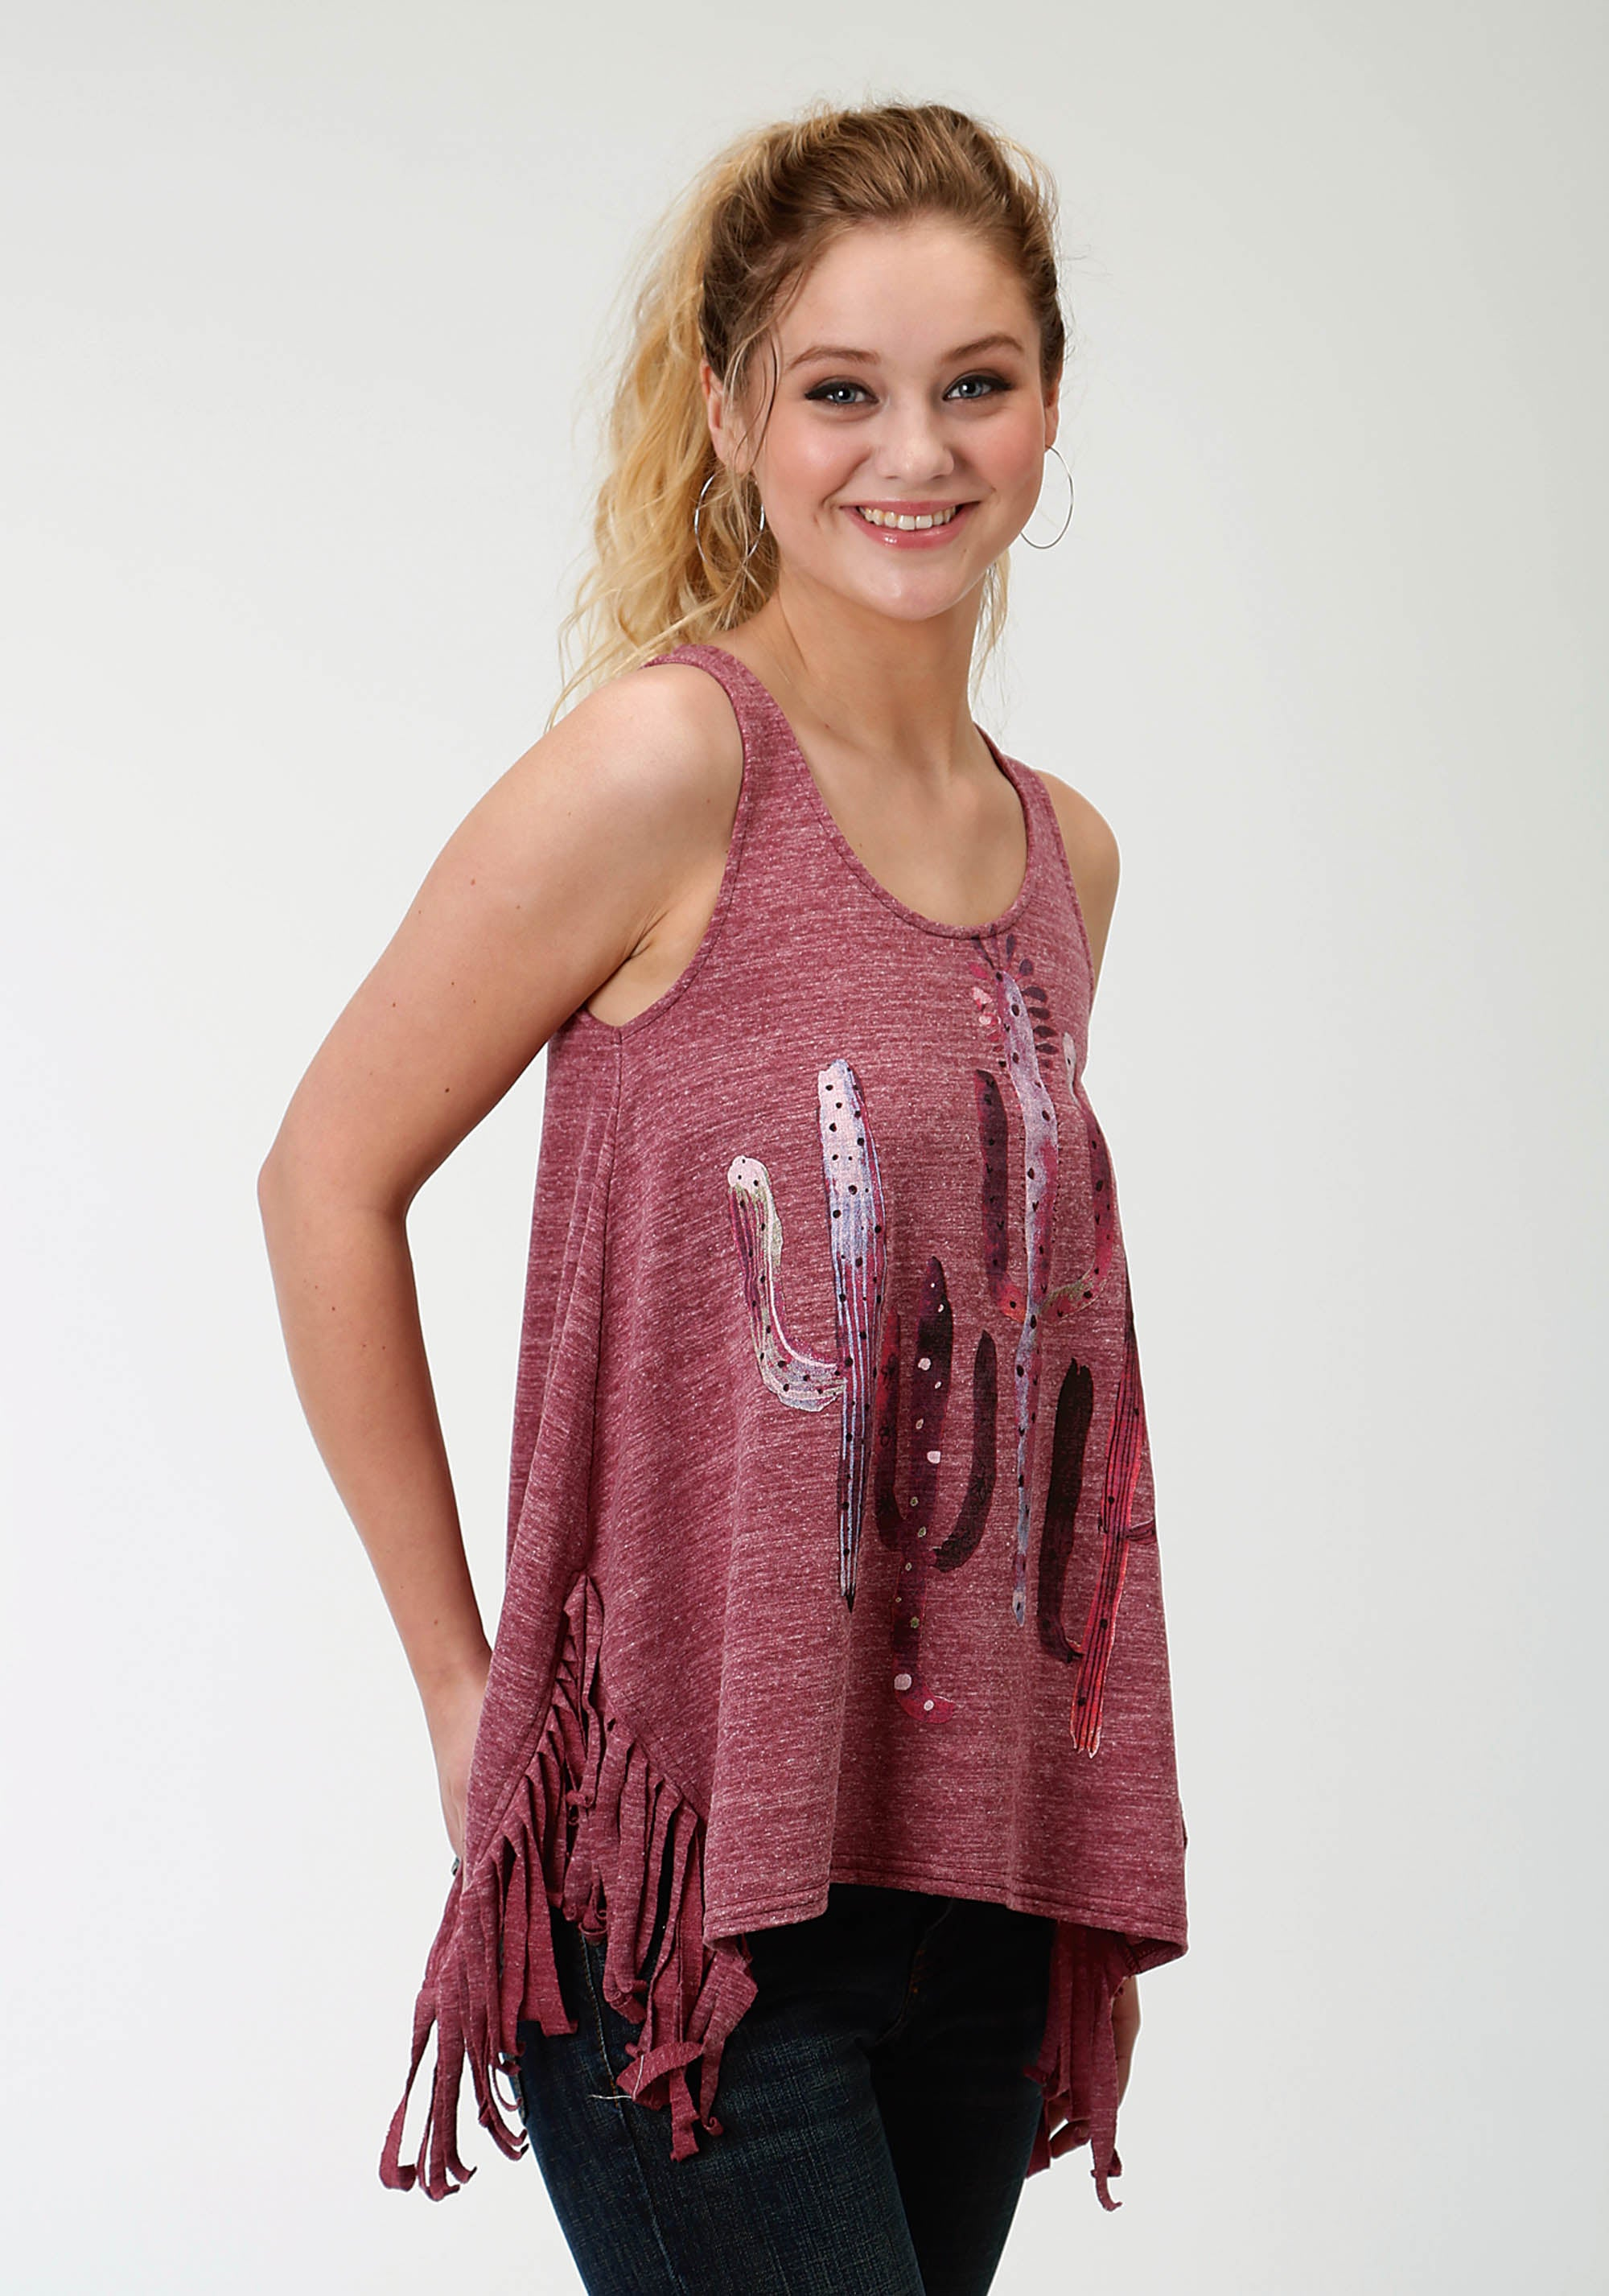 ROPER WOMENS PURPLE 1604 POLY COTTON KNIT FRINGED TANK TOP FIVE STAR- SPRING II SLEEVELESS SHIRT